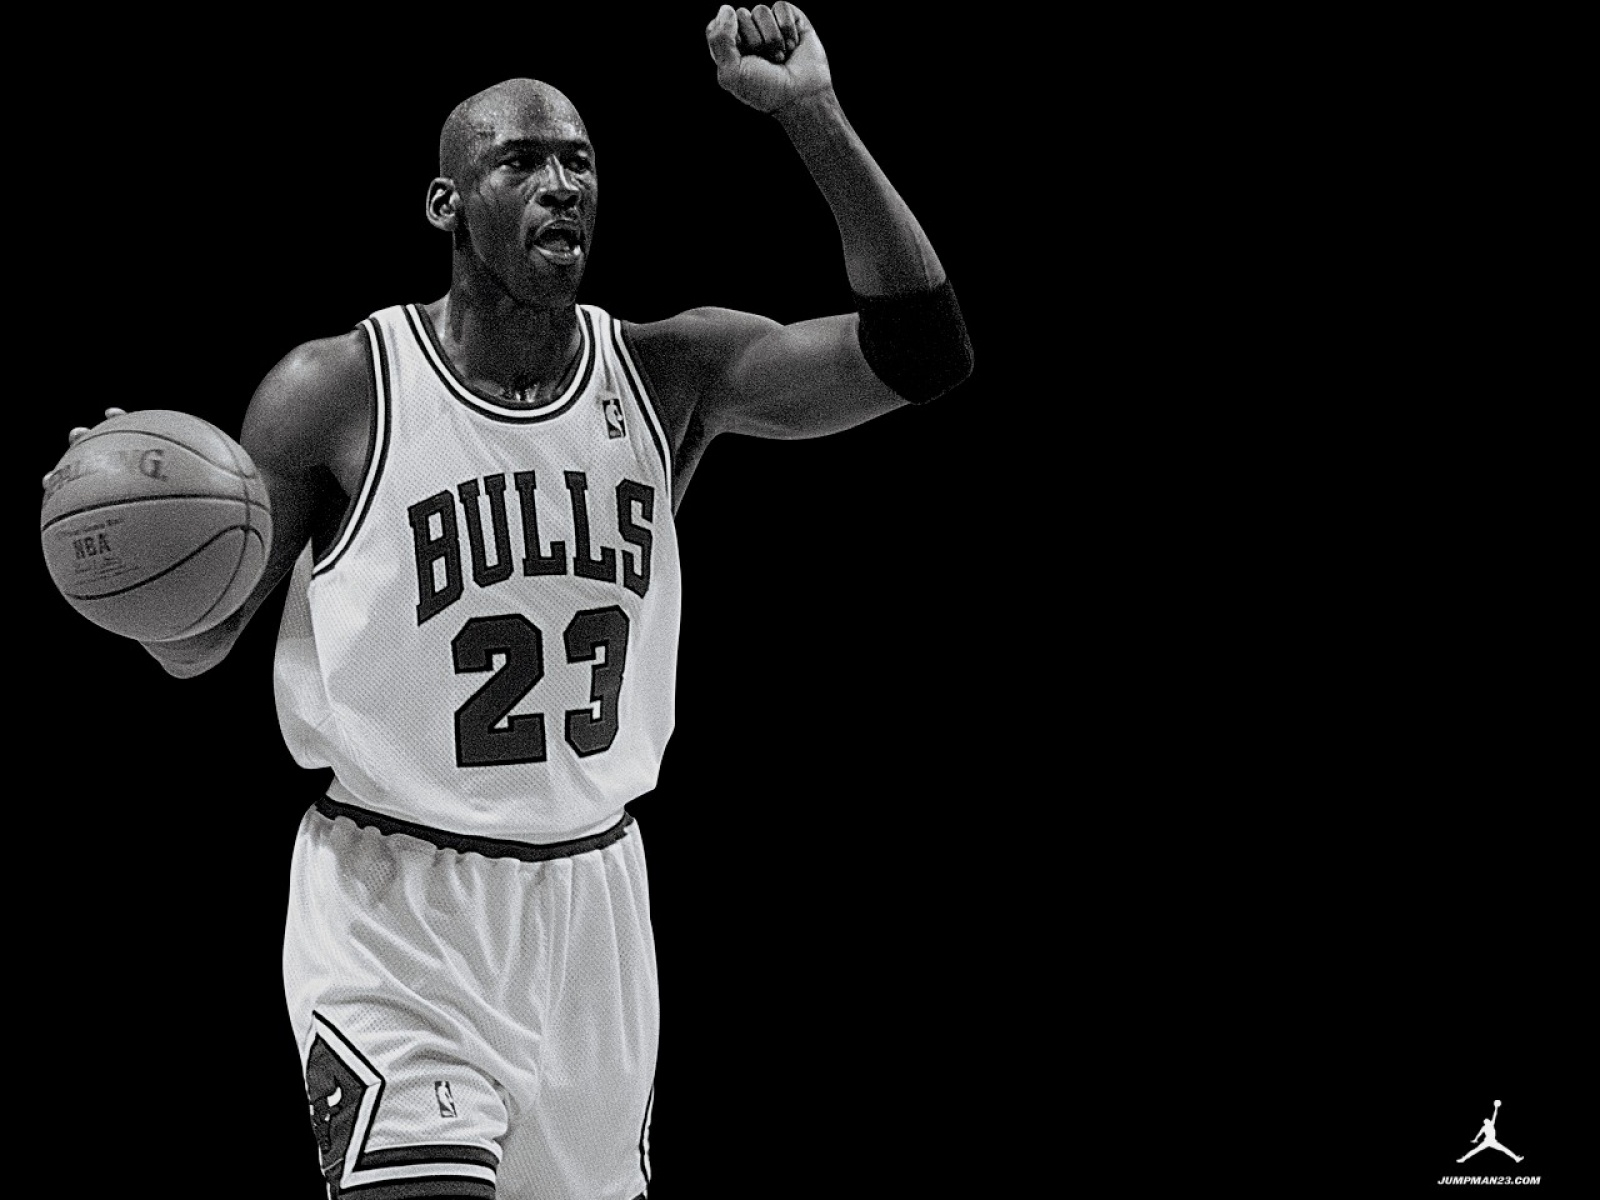 Basketball wallpapers hd cool hd wallpapers - Cool basketball wallpapers hd ...